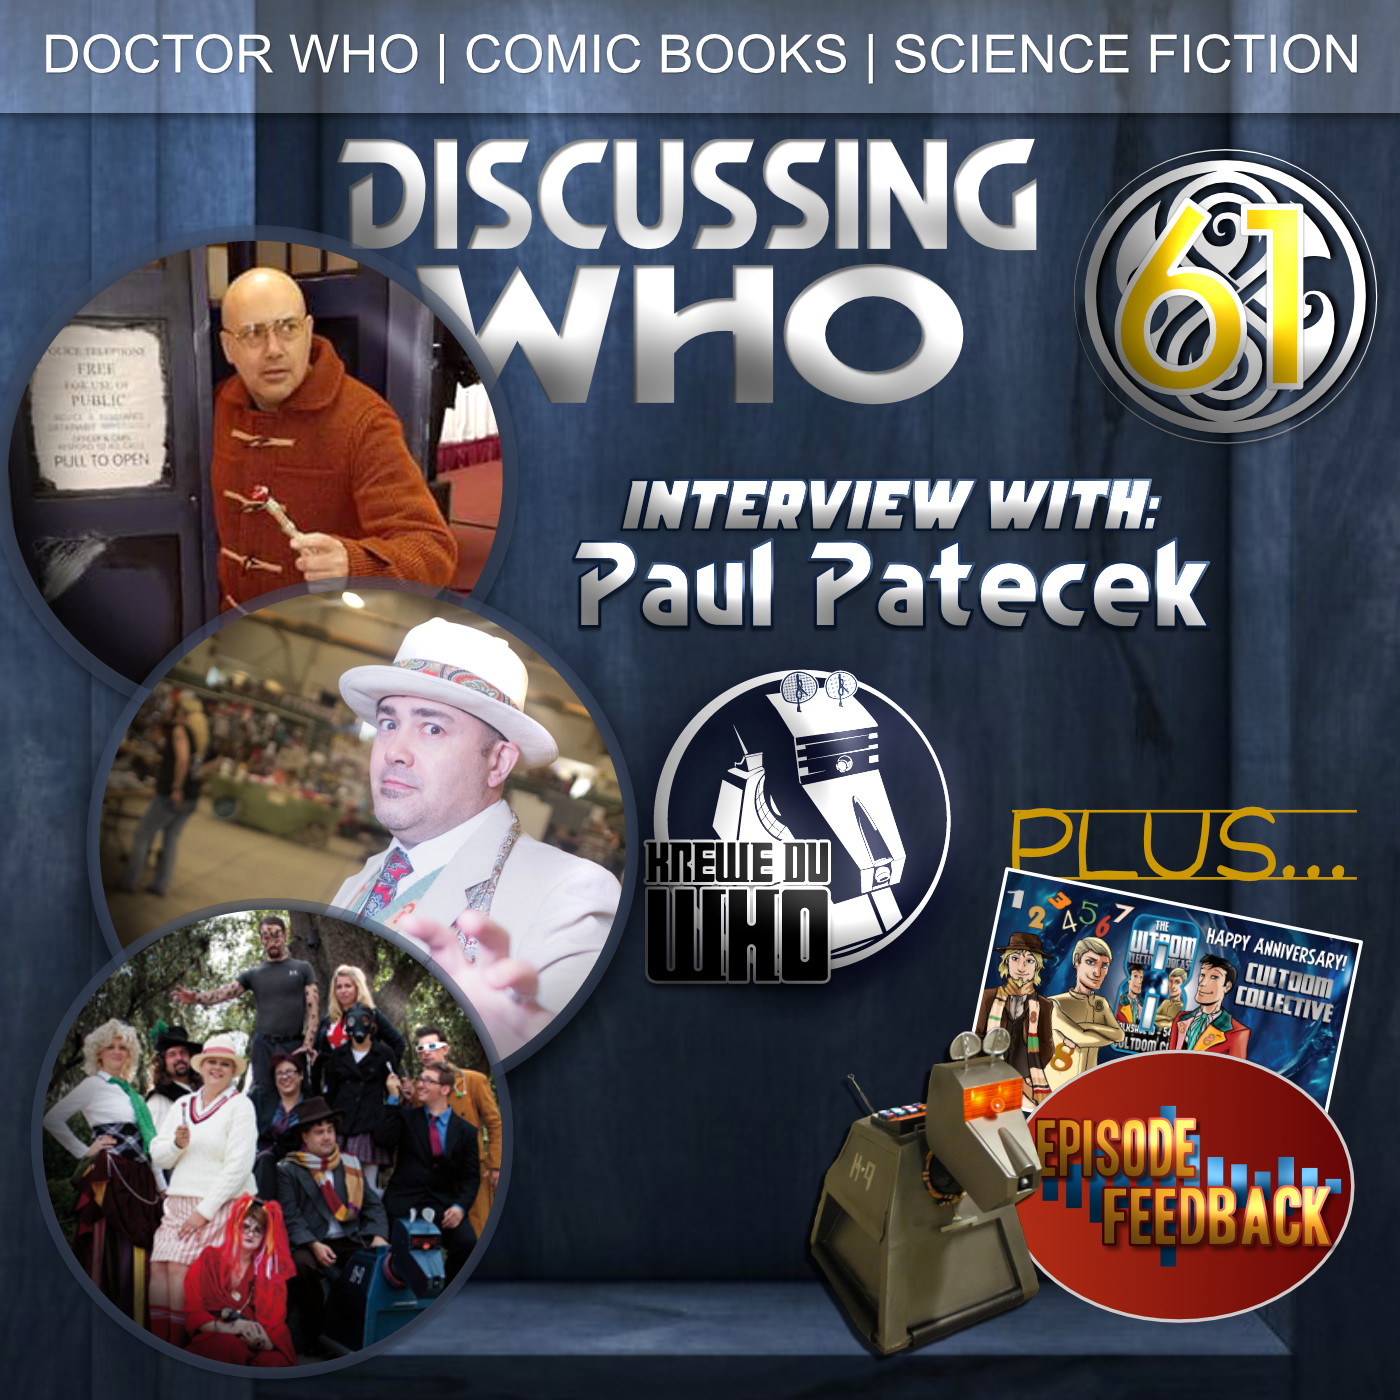 Paul Patecek interview on Discussing Who Episode 61